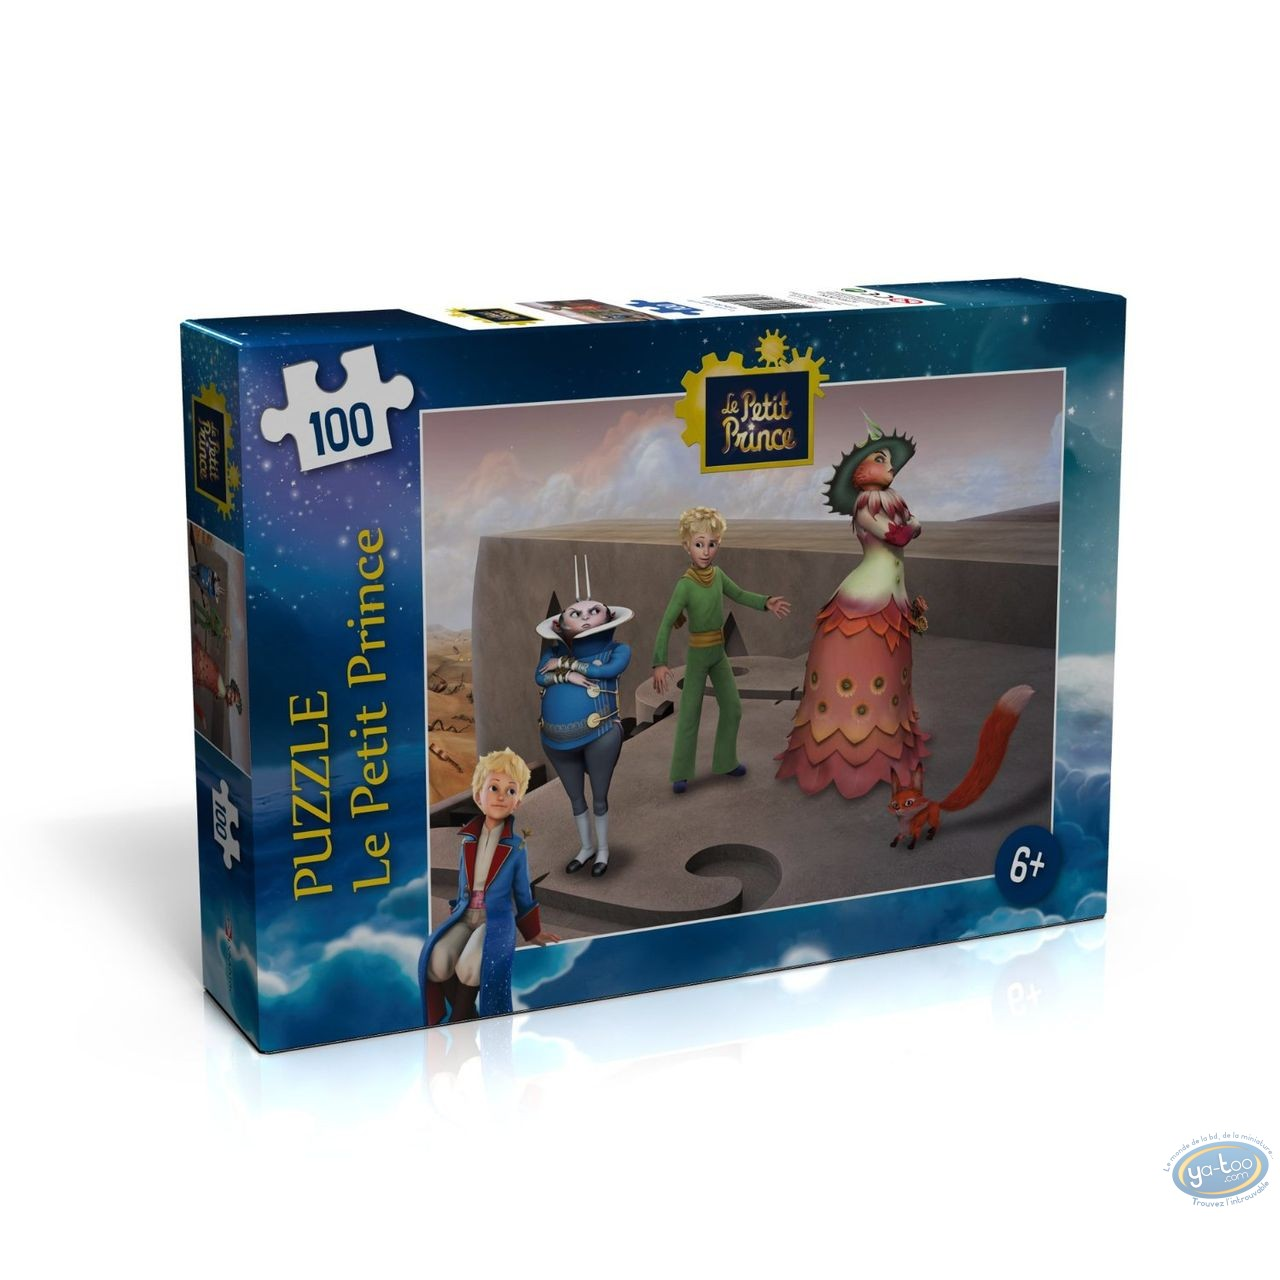 Toy, Little Prince (The) : Puzzle 100 pieces - The dispute